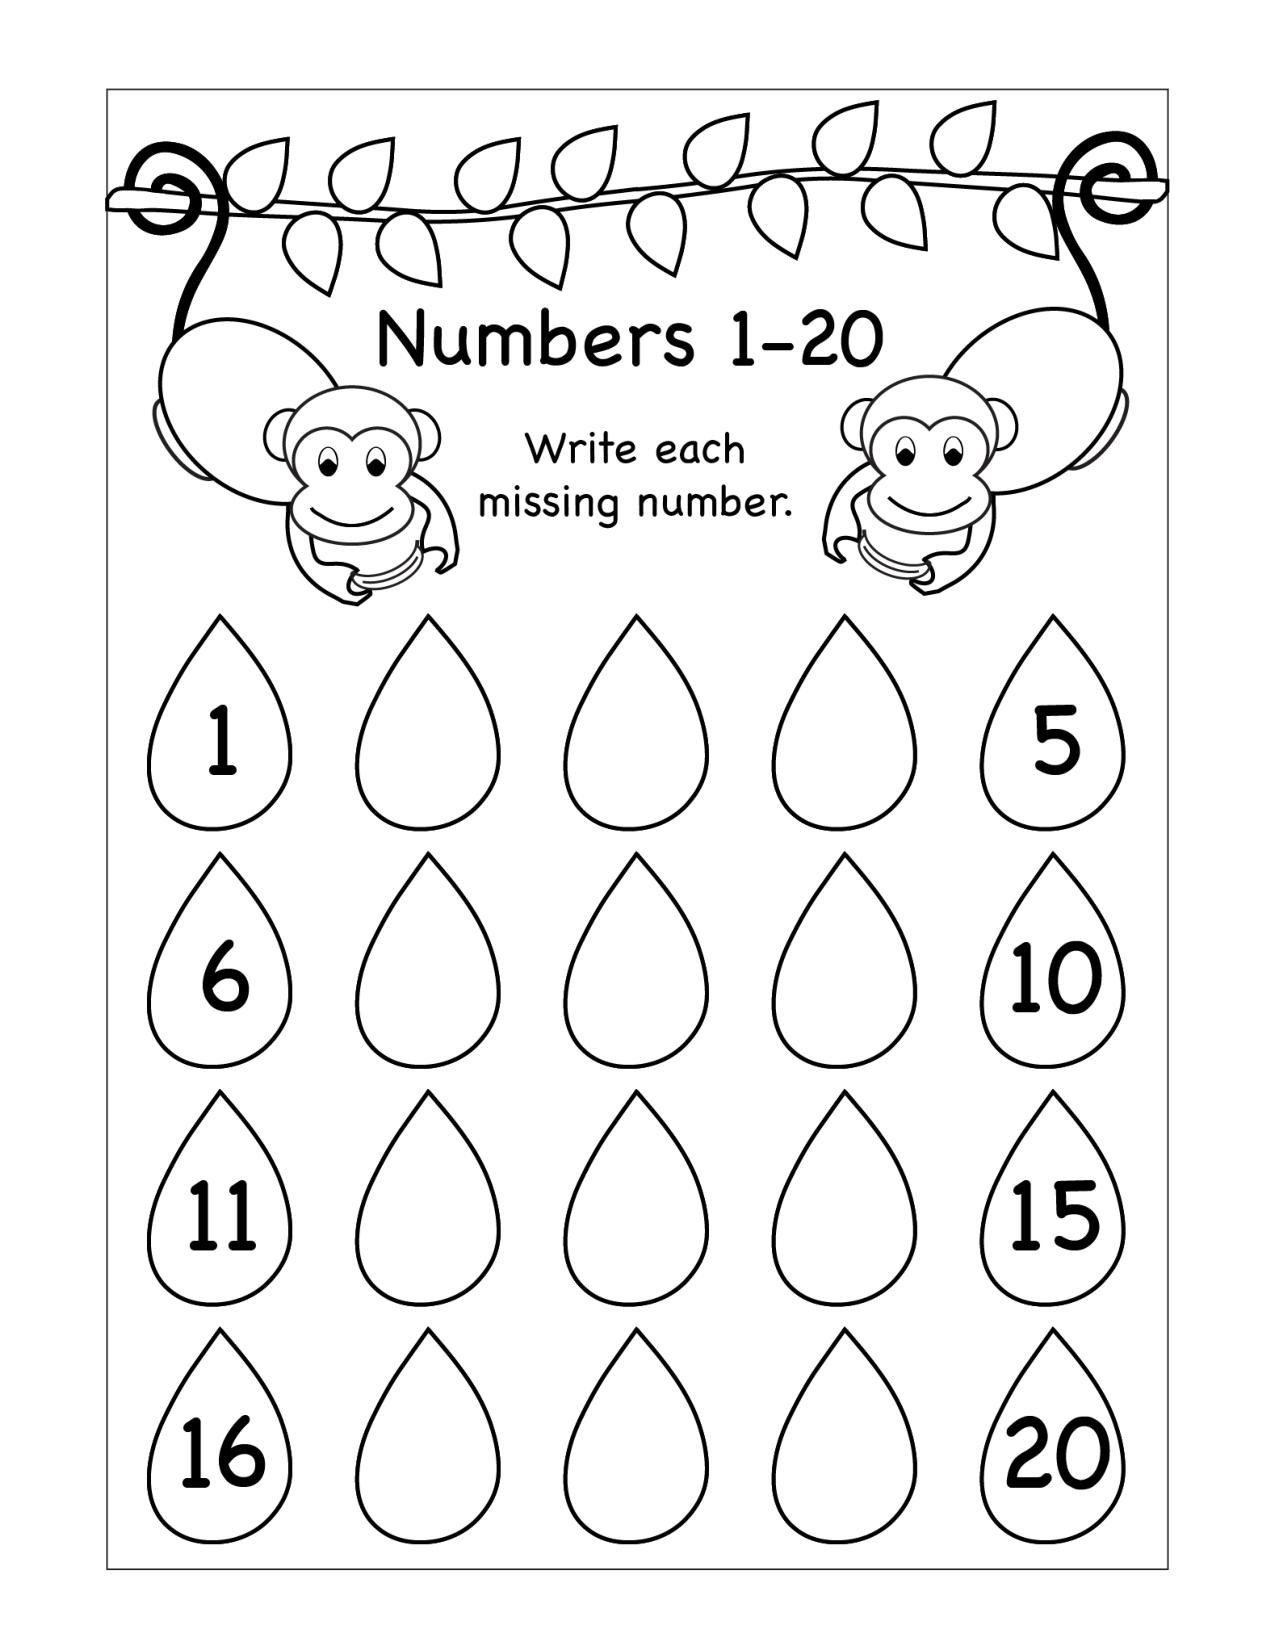 Missing Number Worksheet for Kindergarten Worksheets Worksheet for Kindergarten Missing Numbers